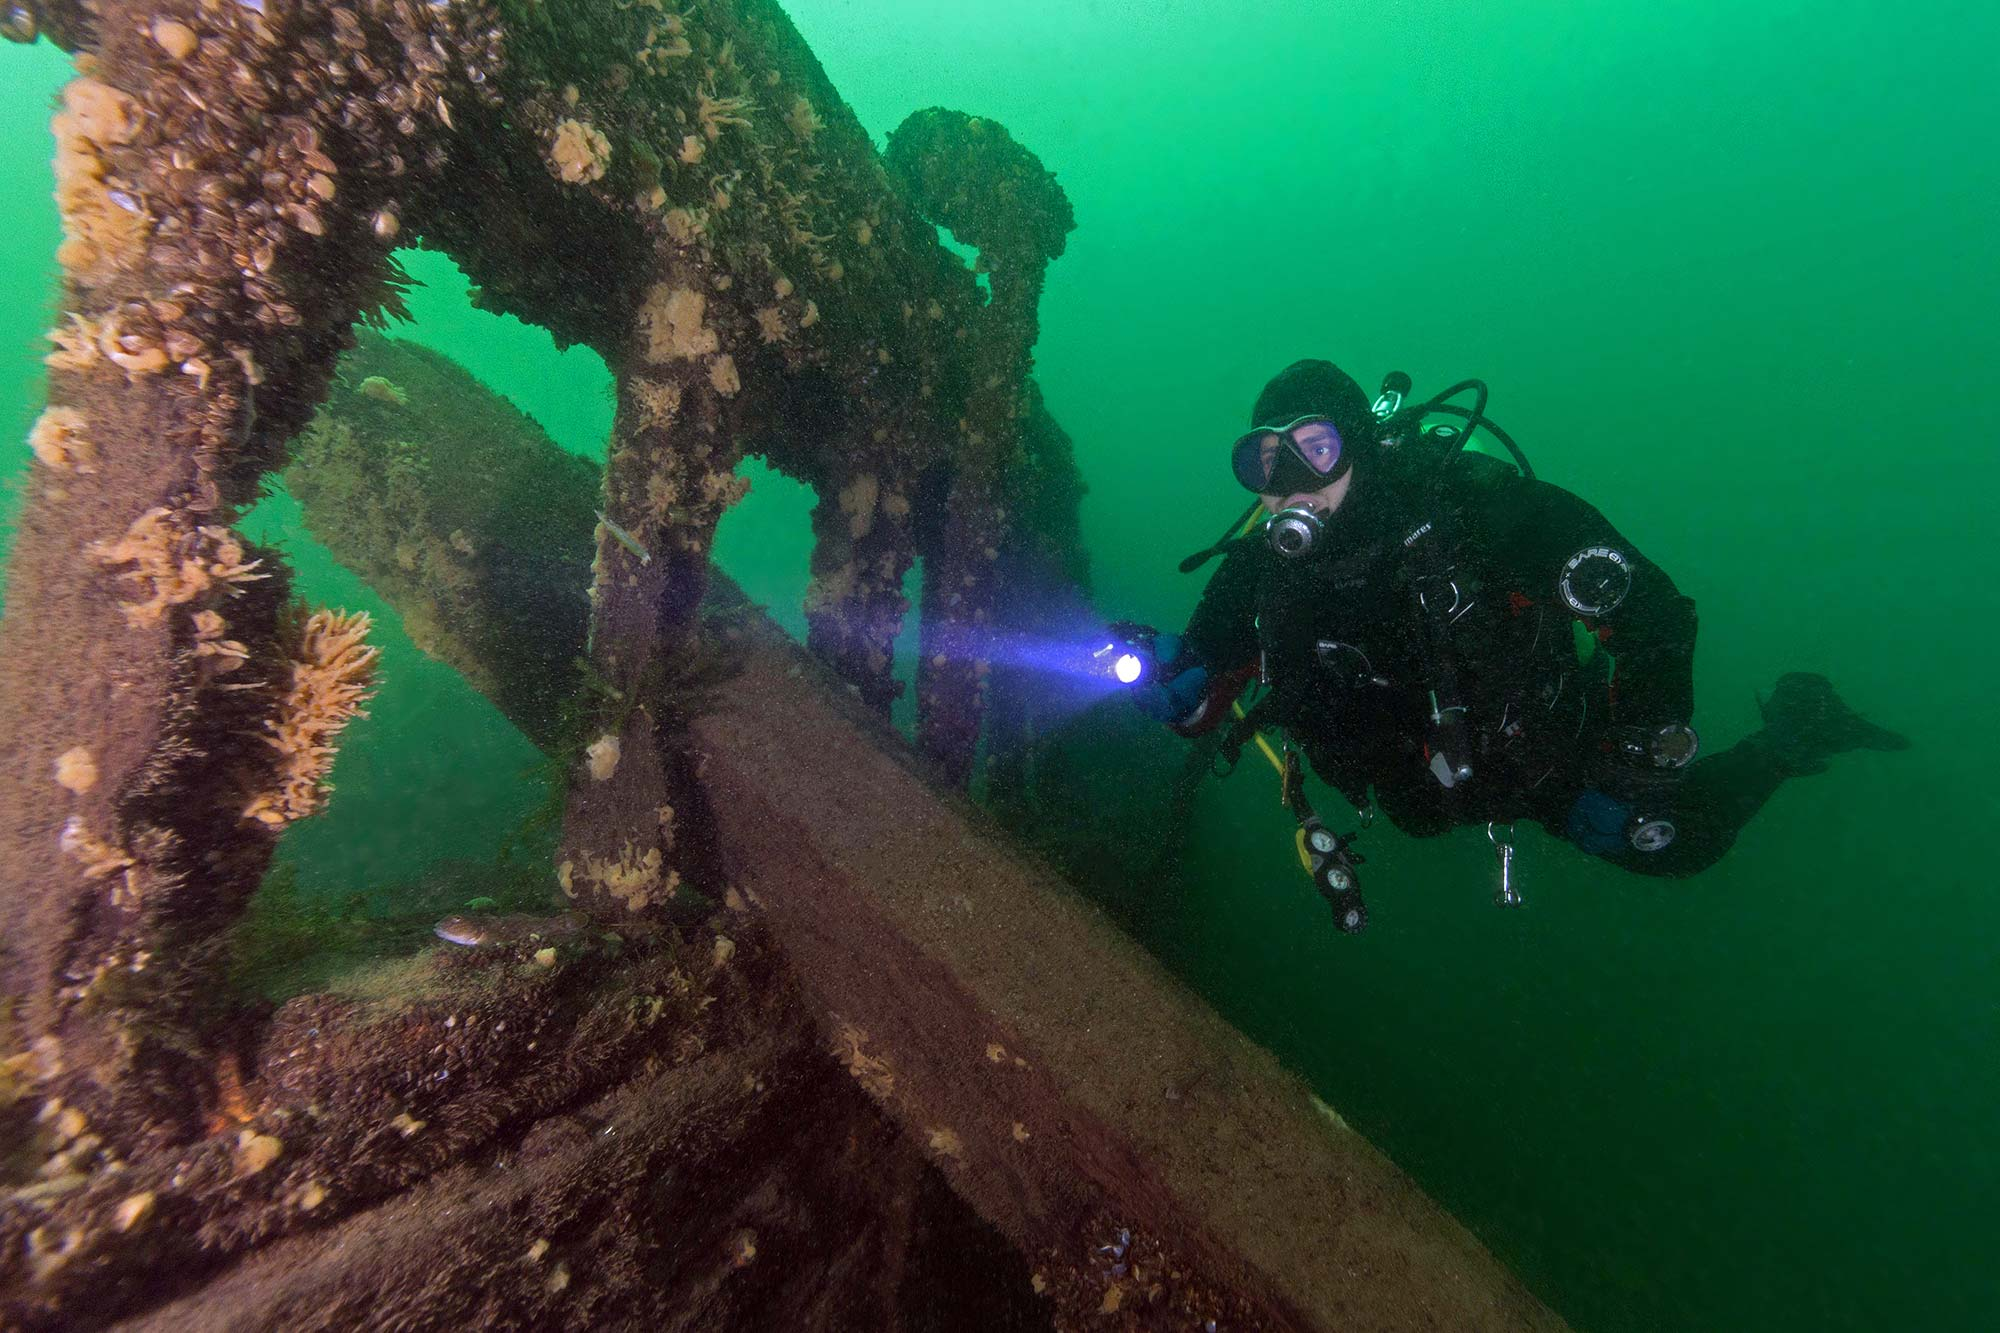 Scuba Diving The St Lawrence River In Brockville, Ontario, Canada